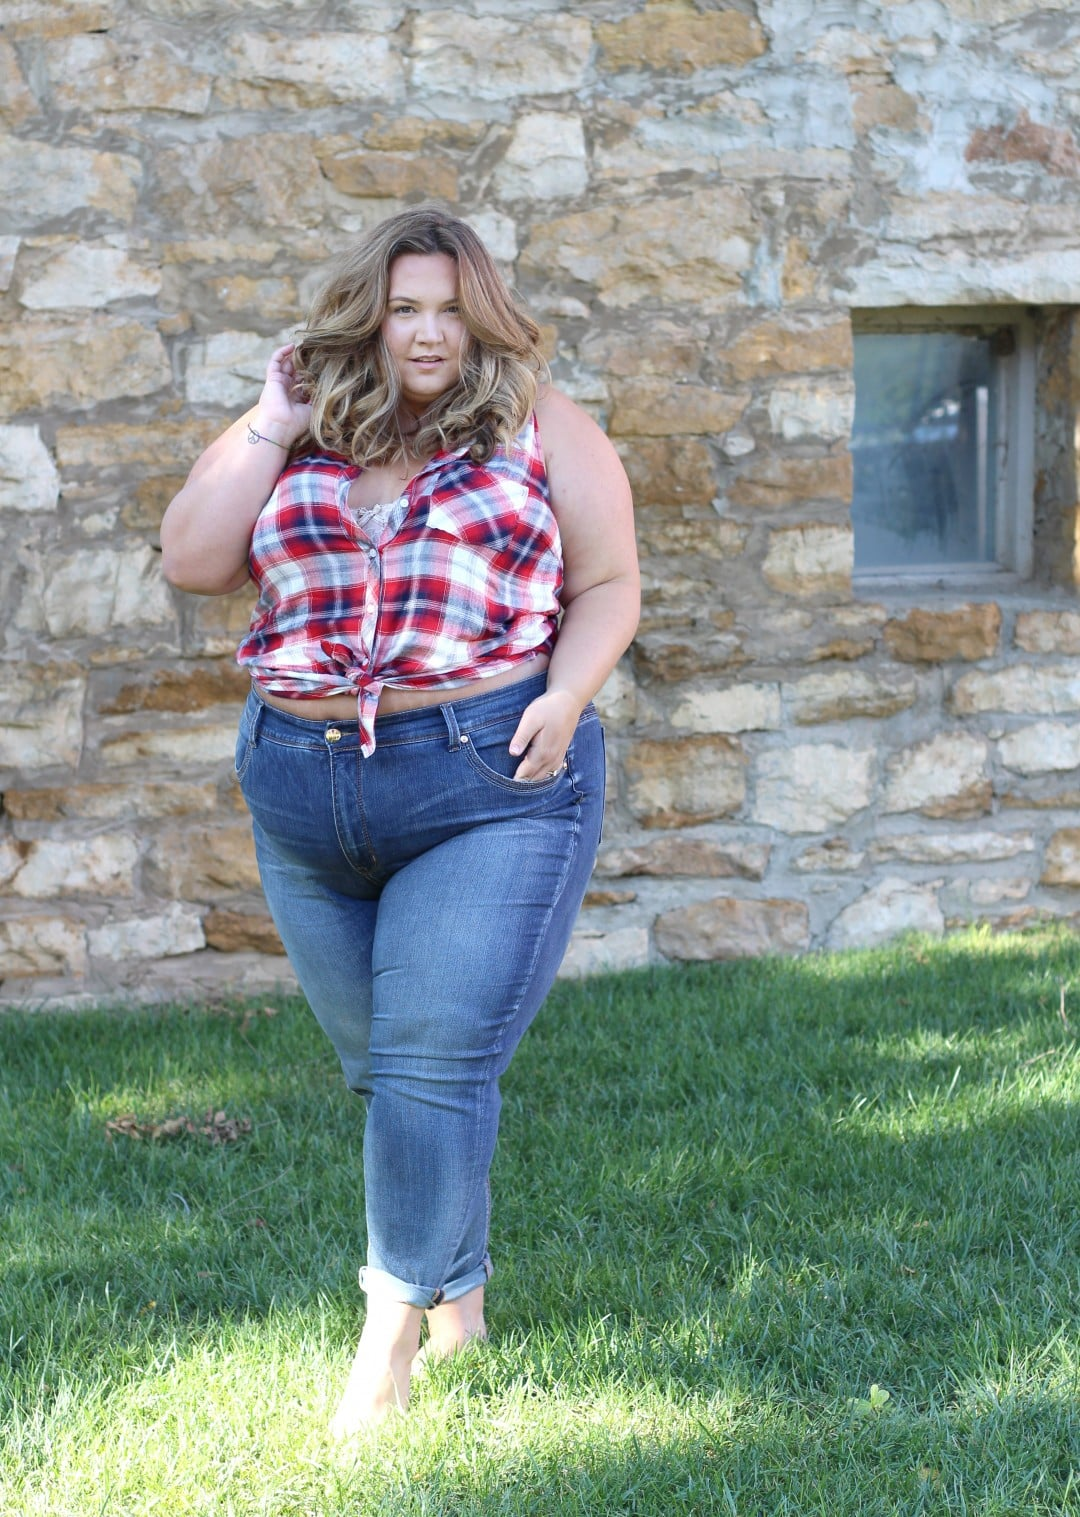 how to wear jeans when you had a fat stomach